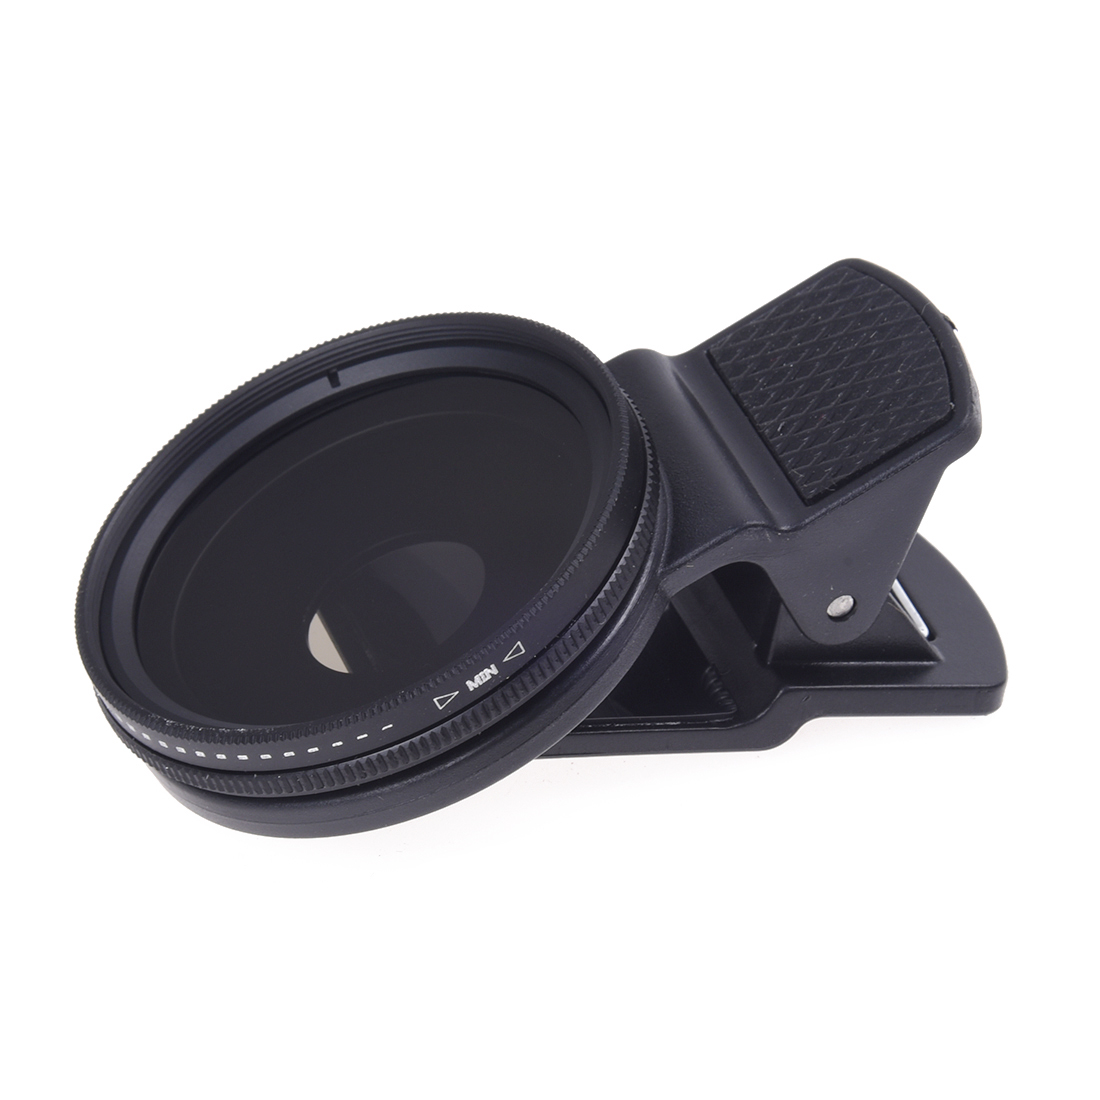 New-37 Mm Mobile Phone Camera Lens Professional Lens CPL Android Smartphone Neutral Density Filter Circular Polarizing Filter